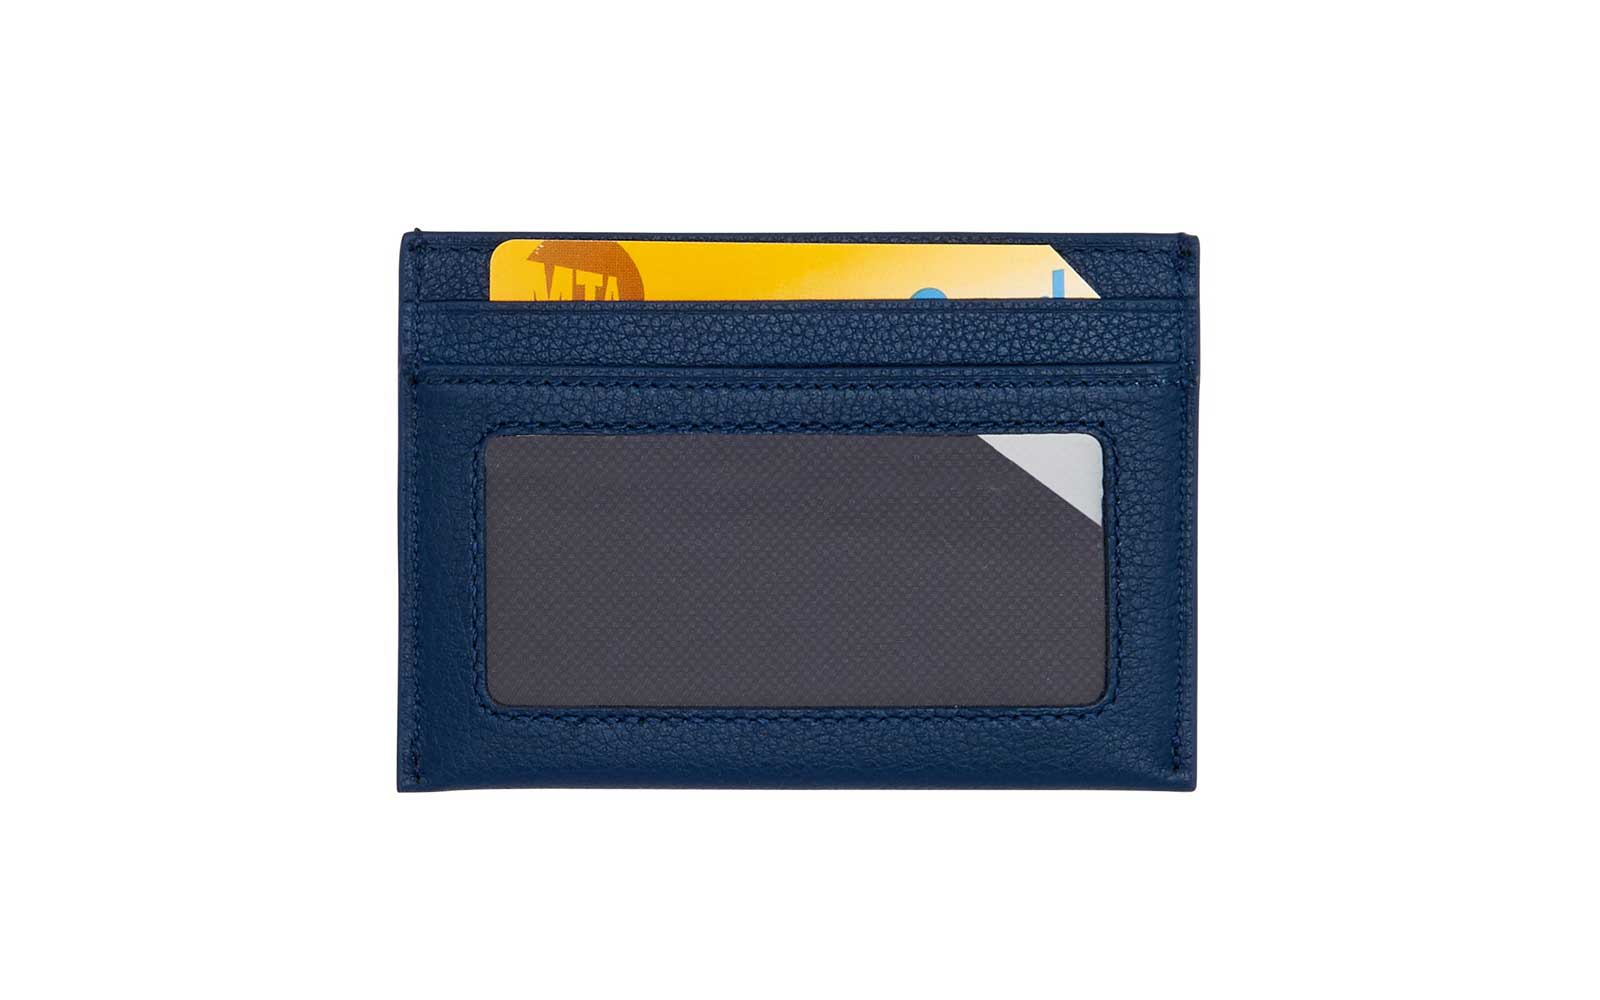 8563f9d70fd8 The Best Travel Wallets for Men | Travel + Leisure